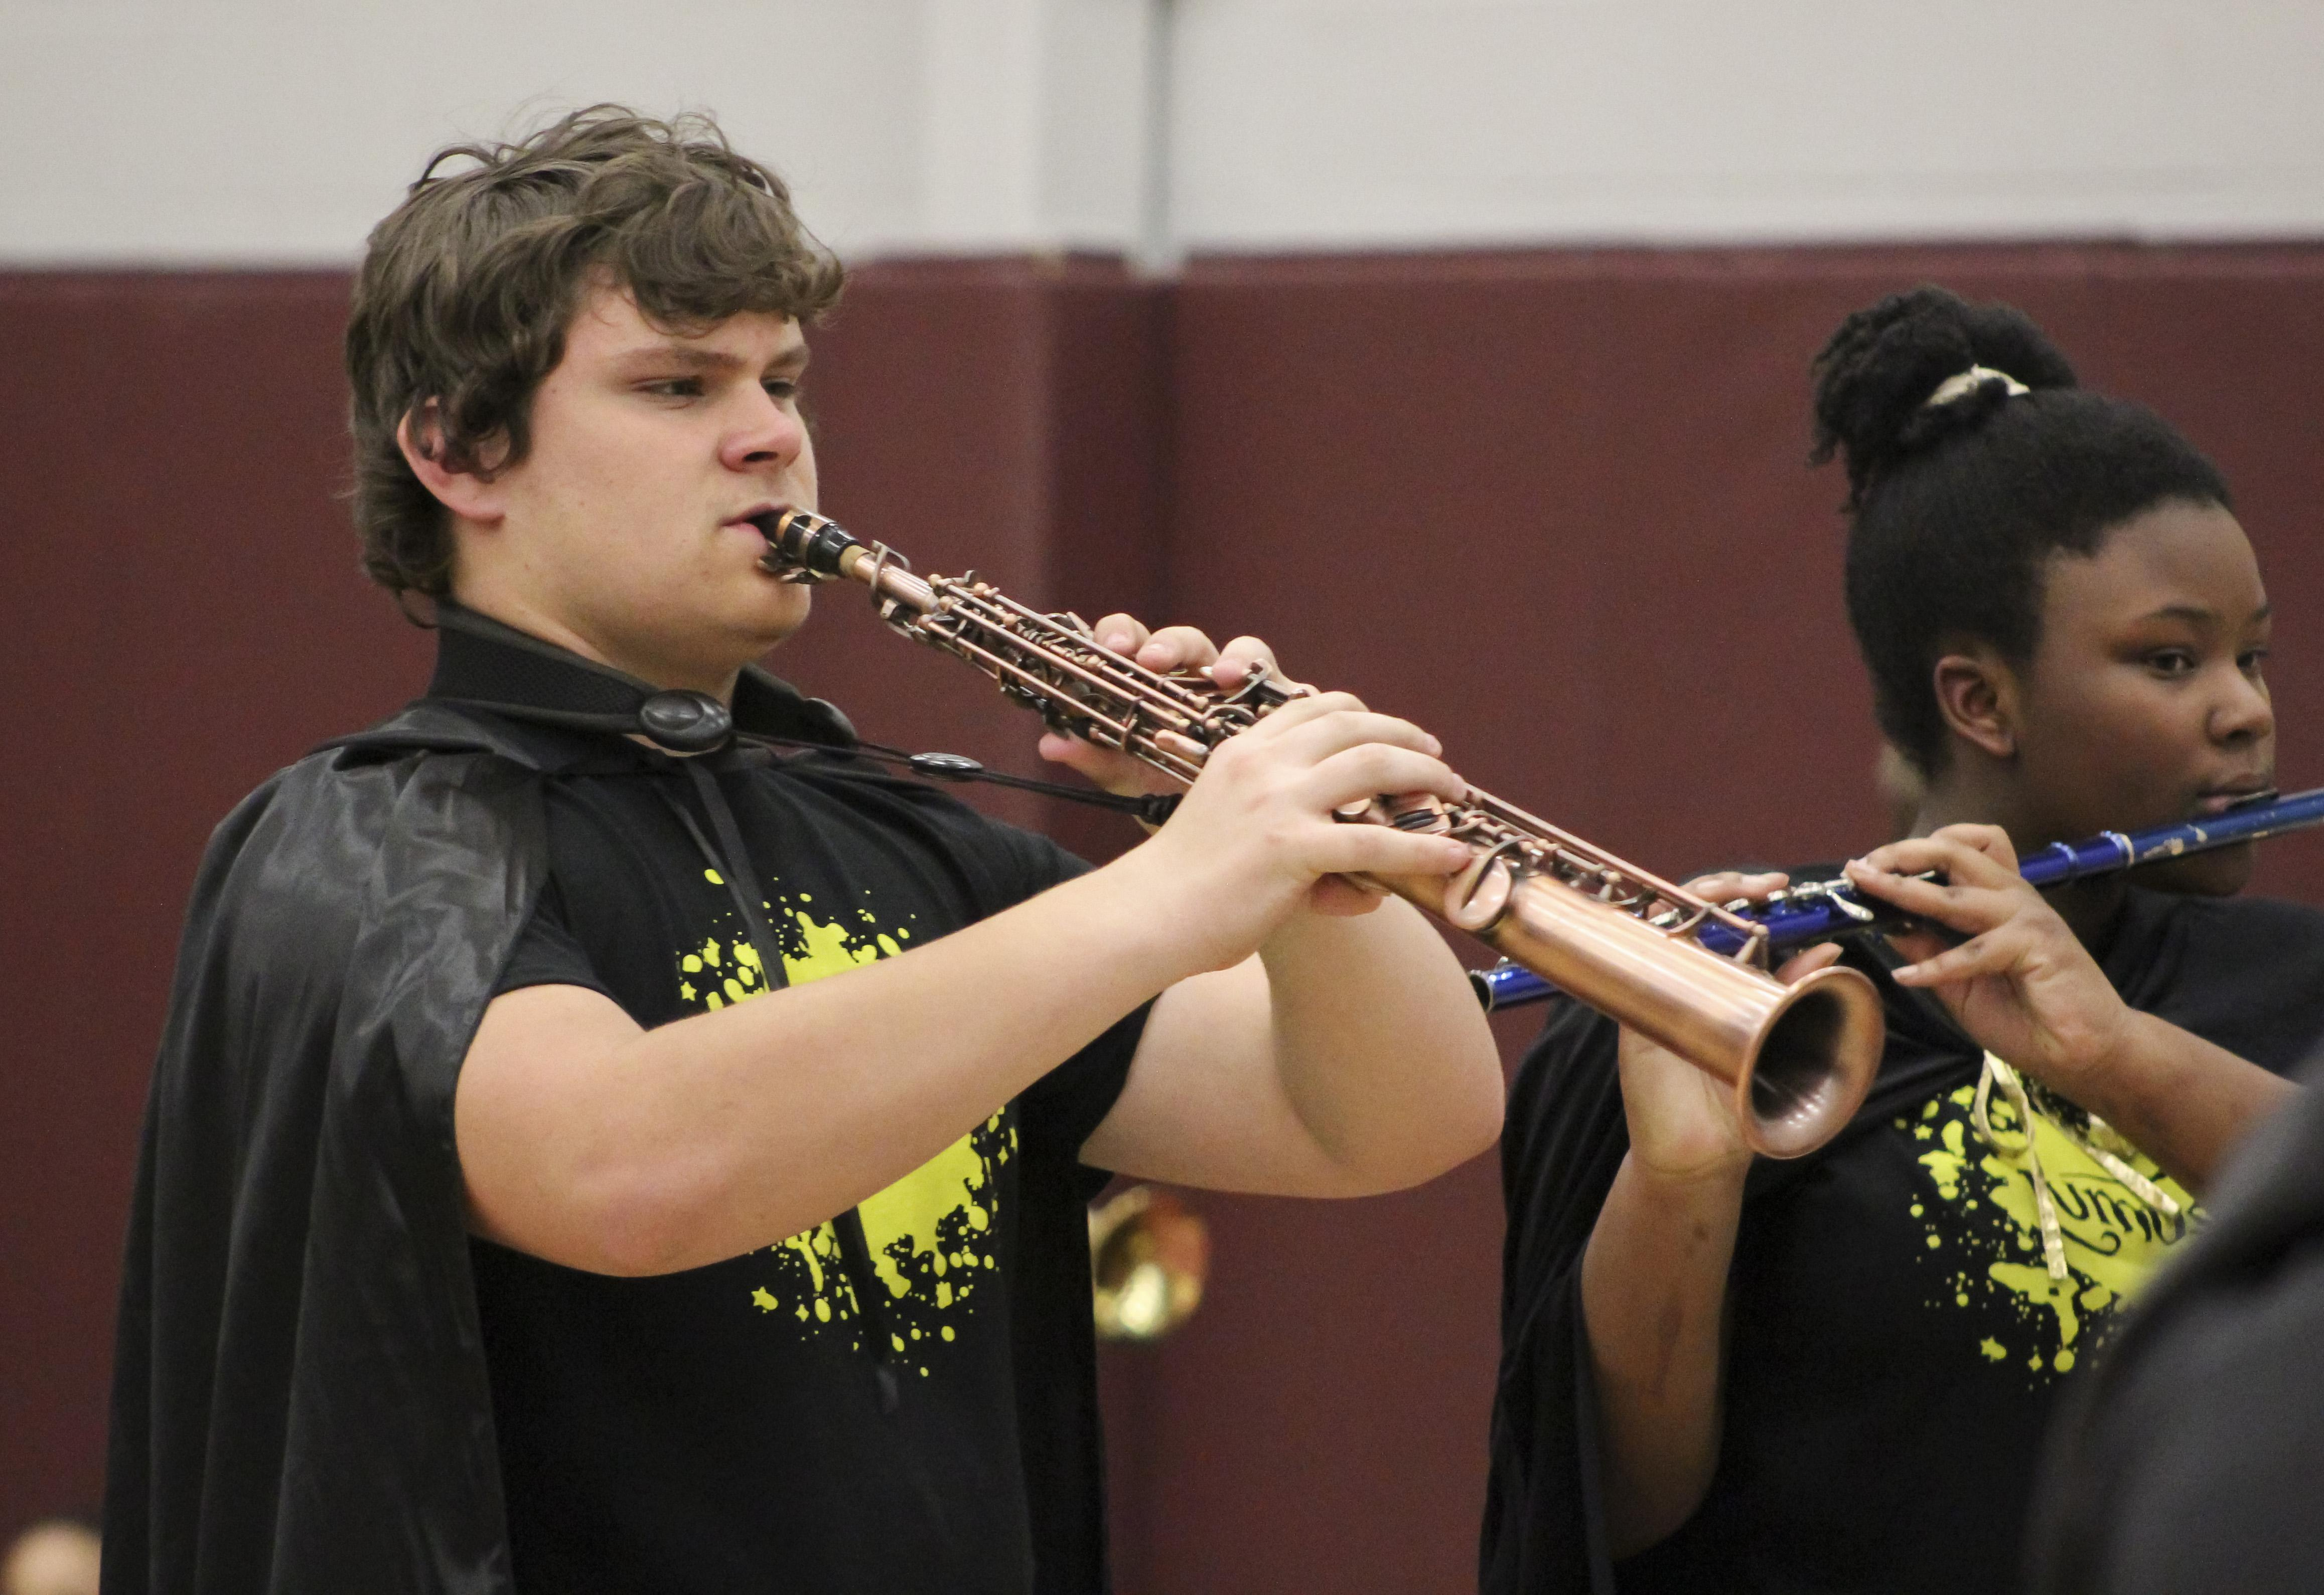 CHMS student playing clarinet